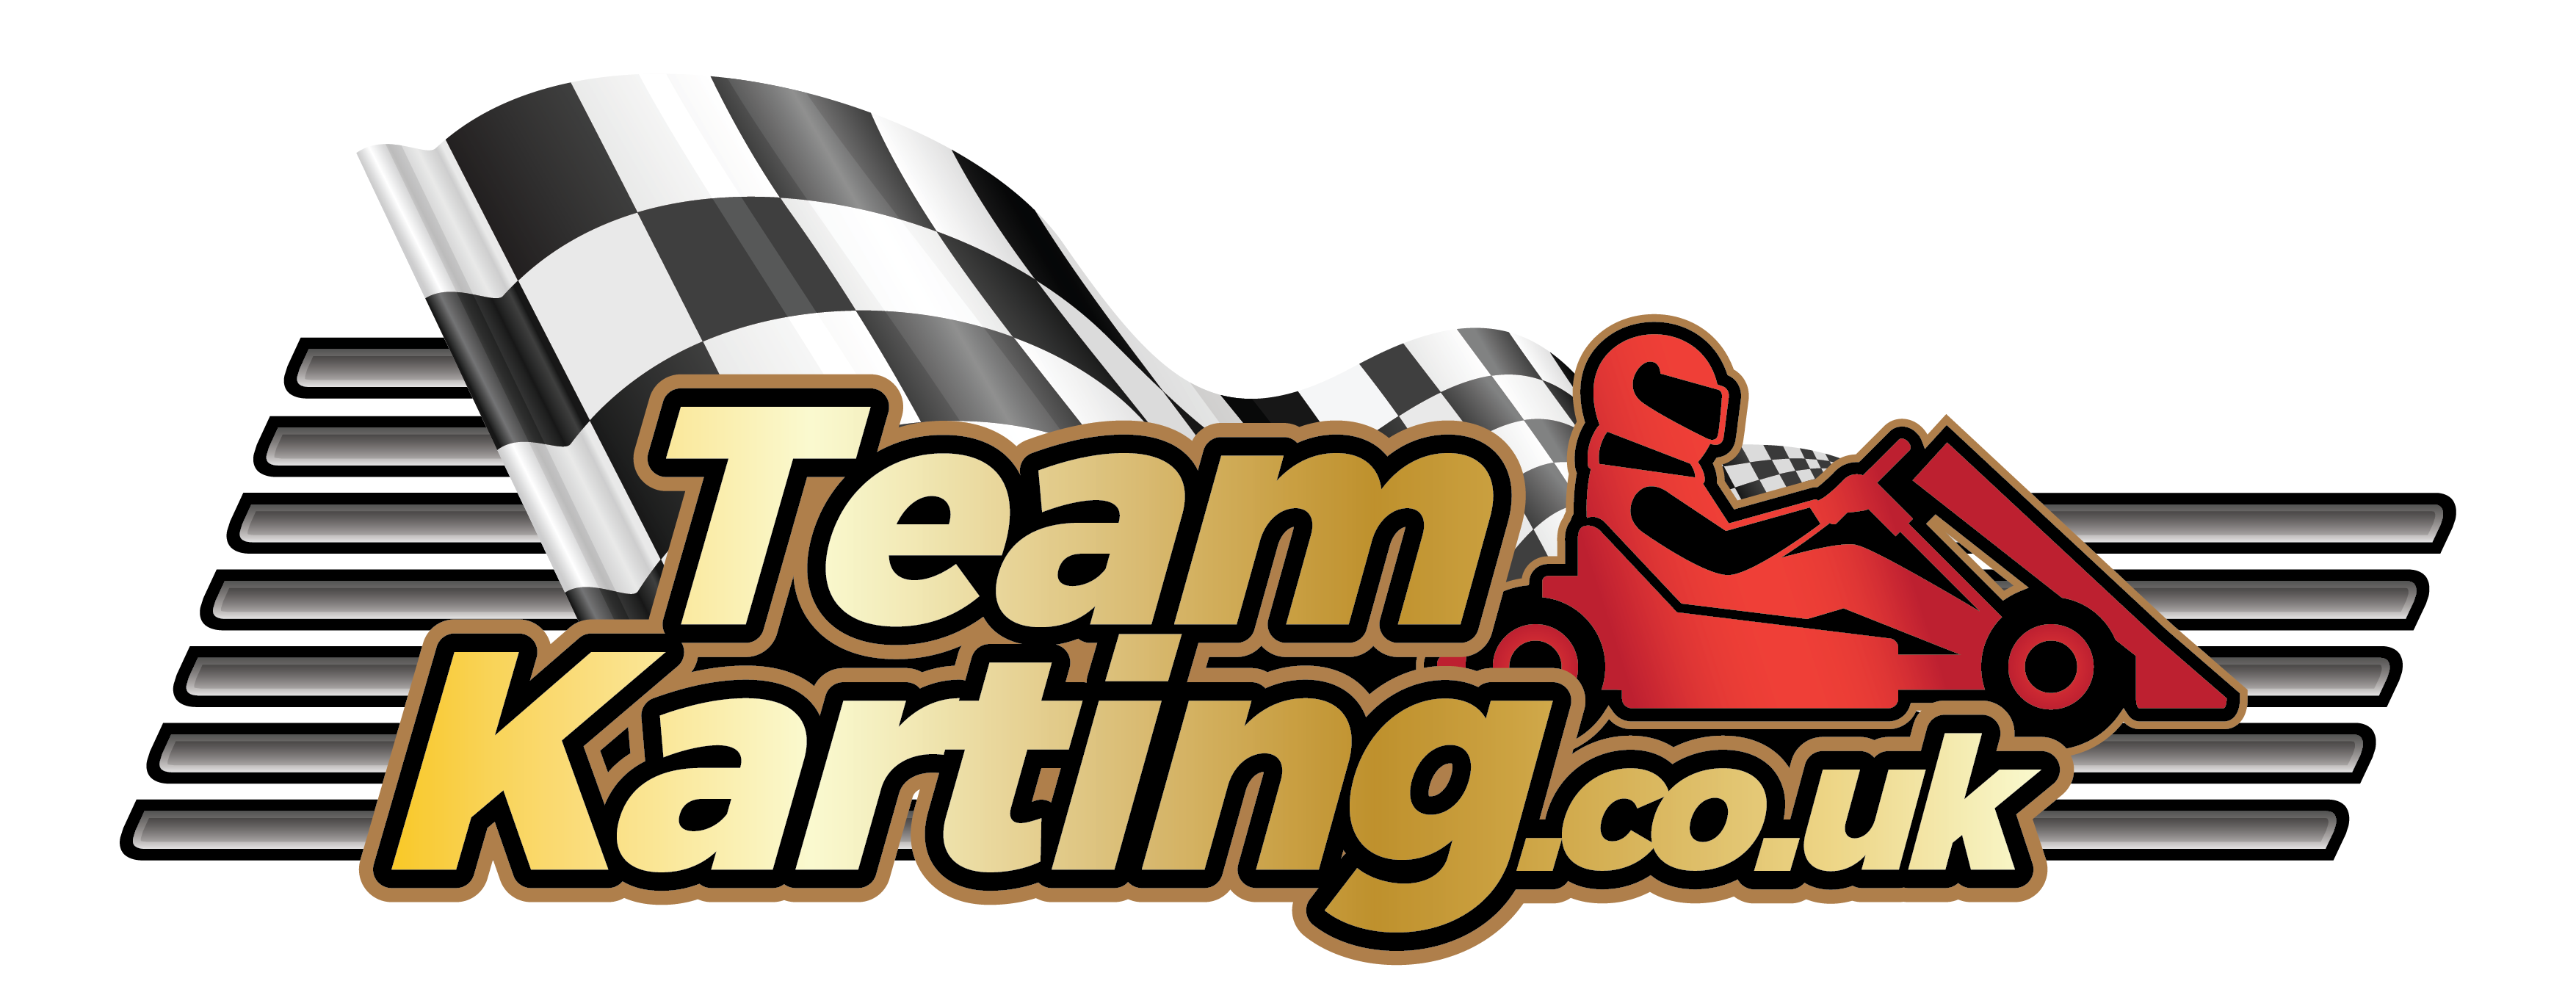 TeamKarting.co.uk